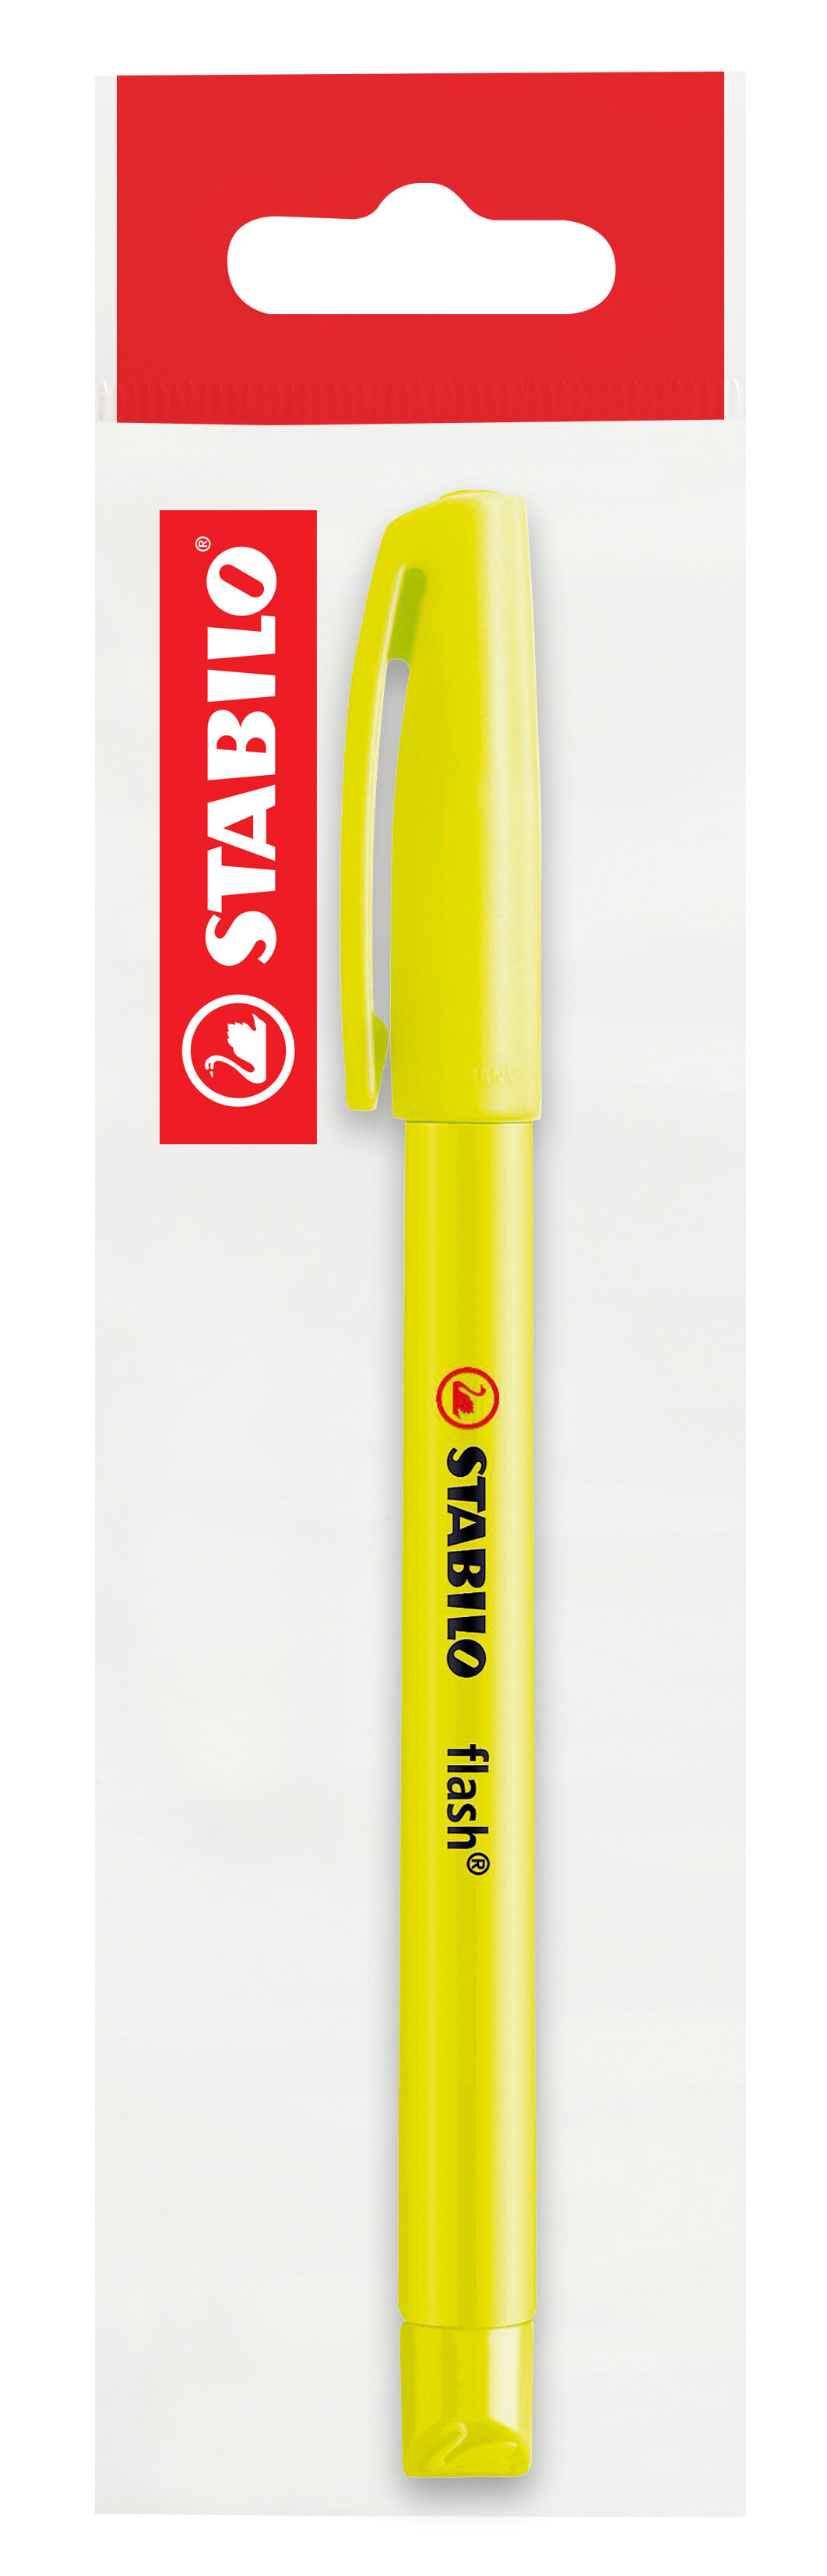 STABILO Flash Highlighters Pen